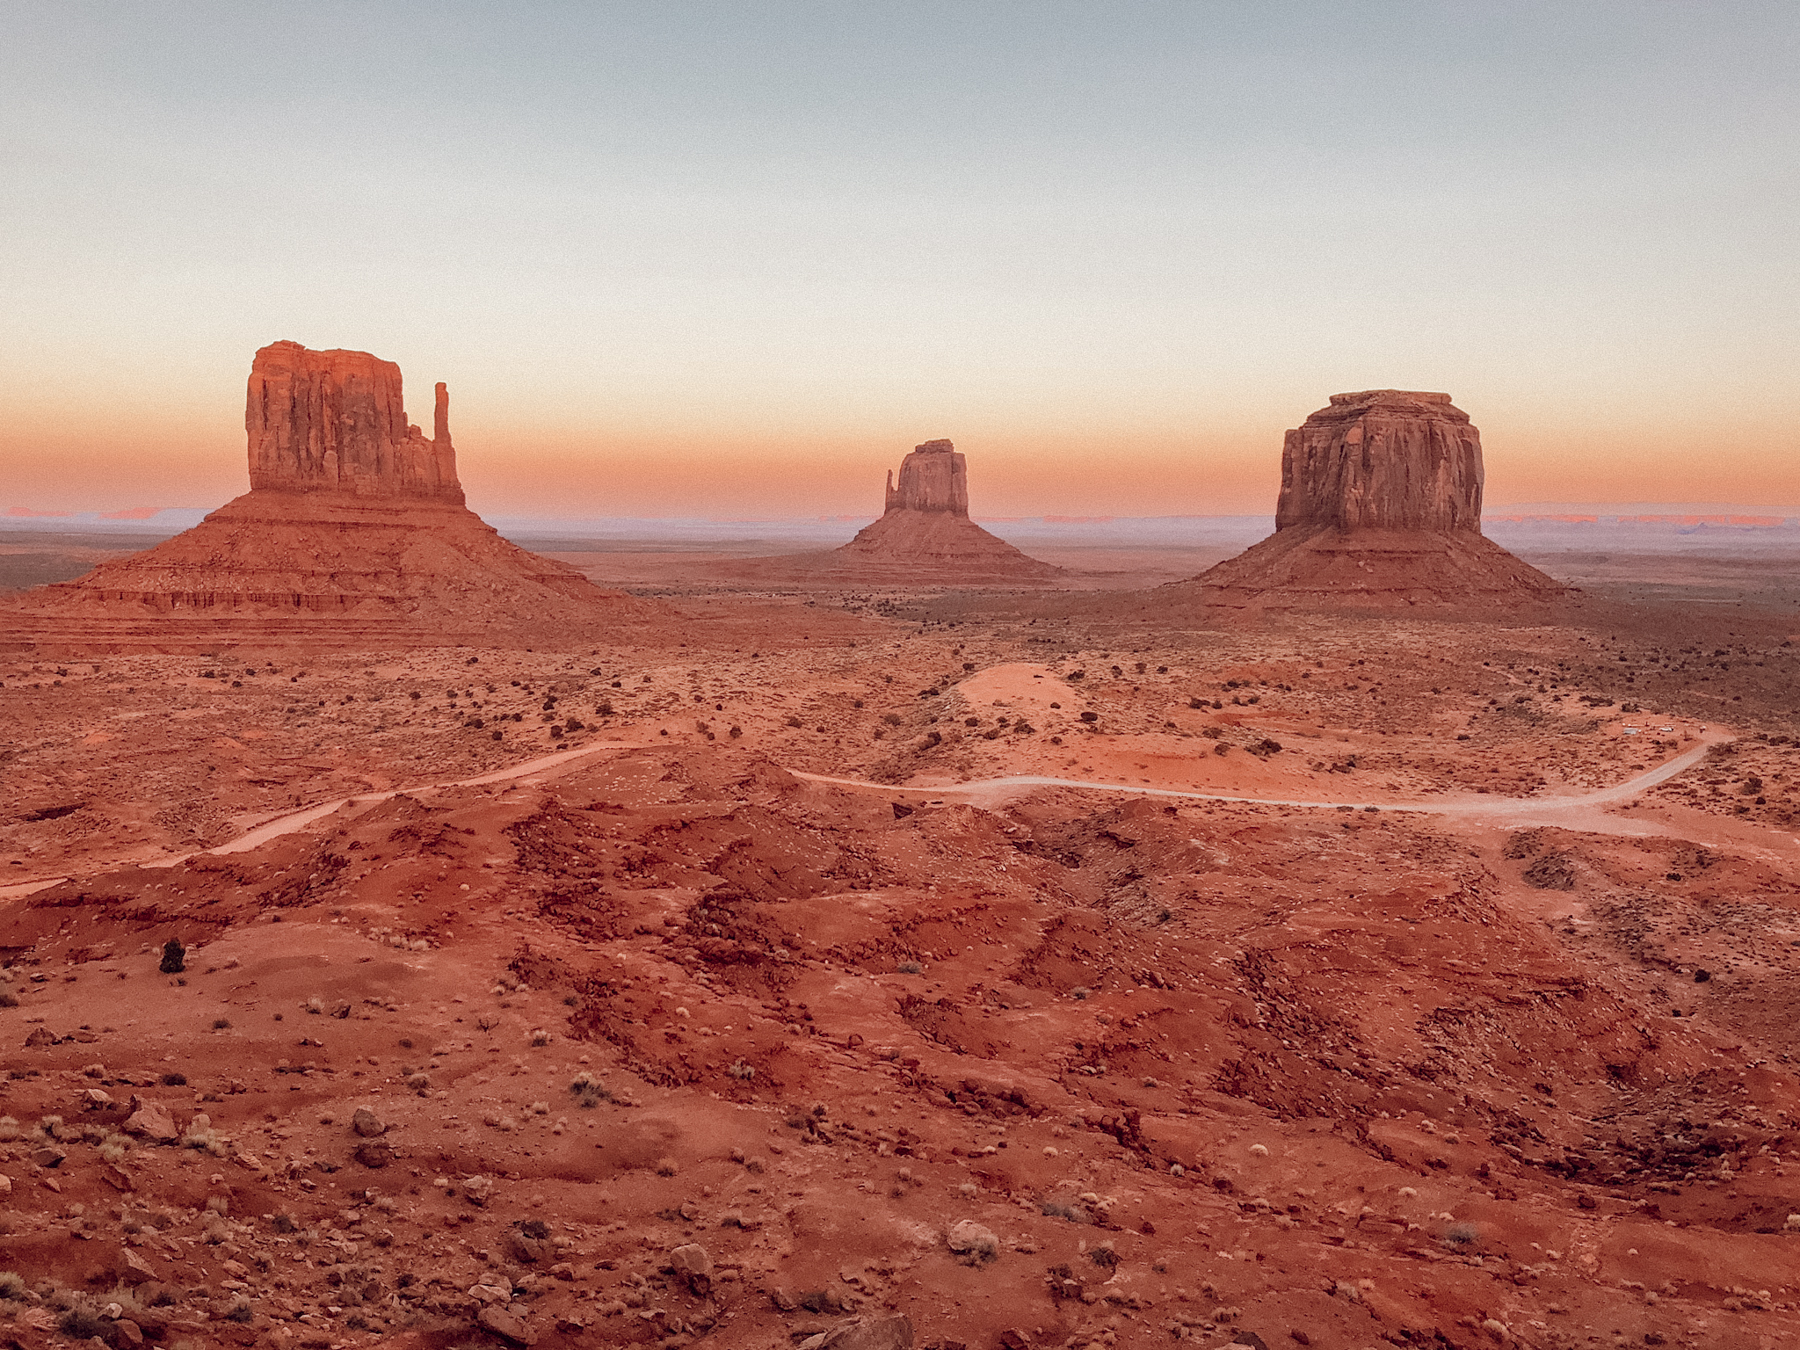 Blog-Mode-And-the-City-Lifestyle-voyage-roadtrip-USA-cote-ouest-grand-canyon-monument-valley-18